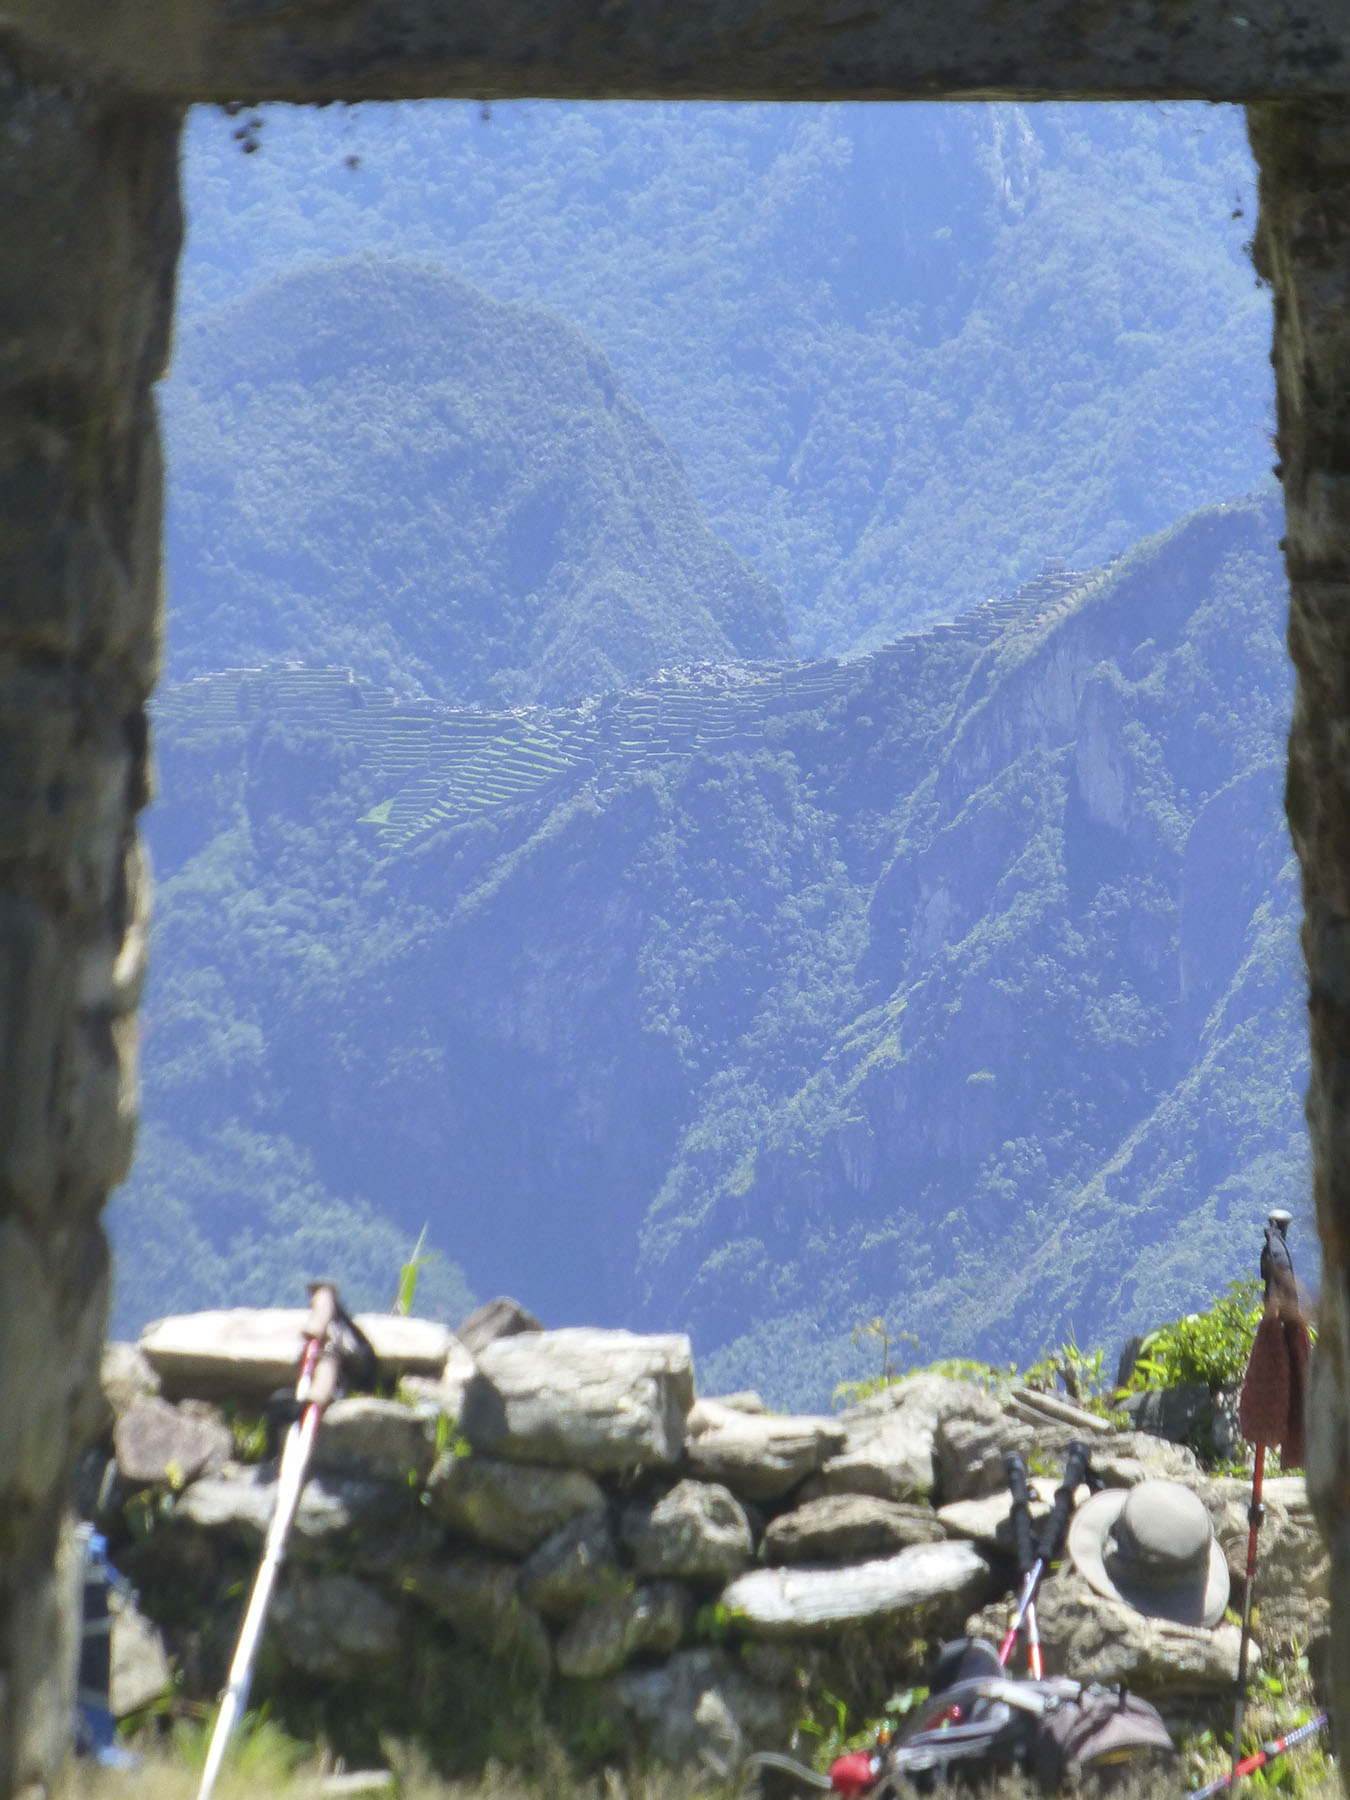 Here, you can see Machu Picchu through the entryway of Llactapata. So close, yet so far away.